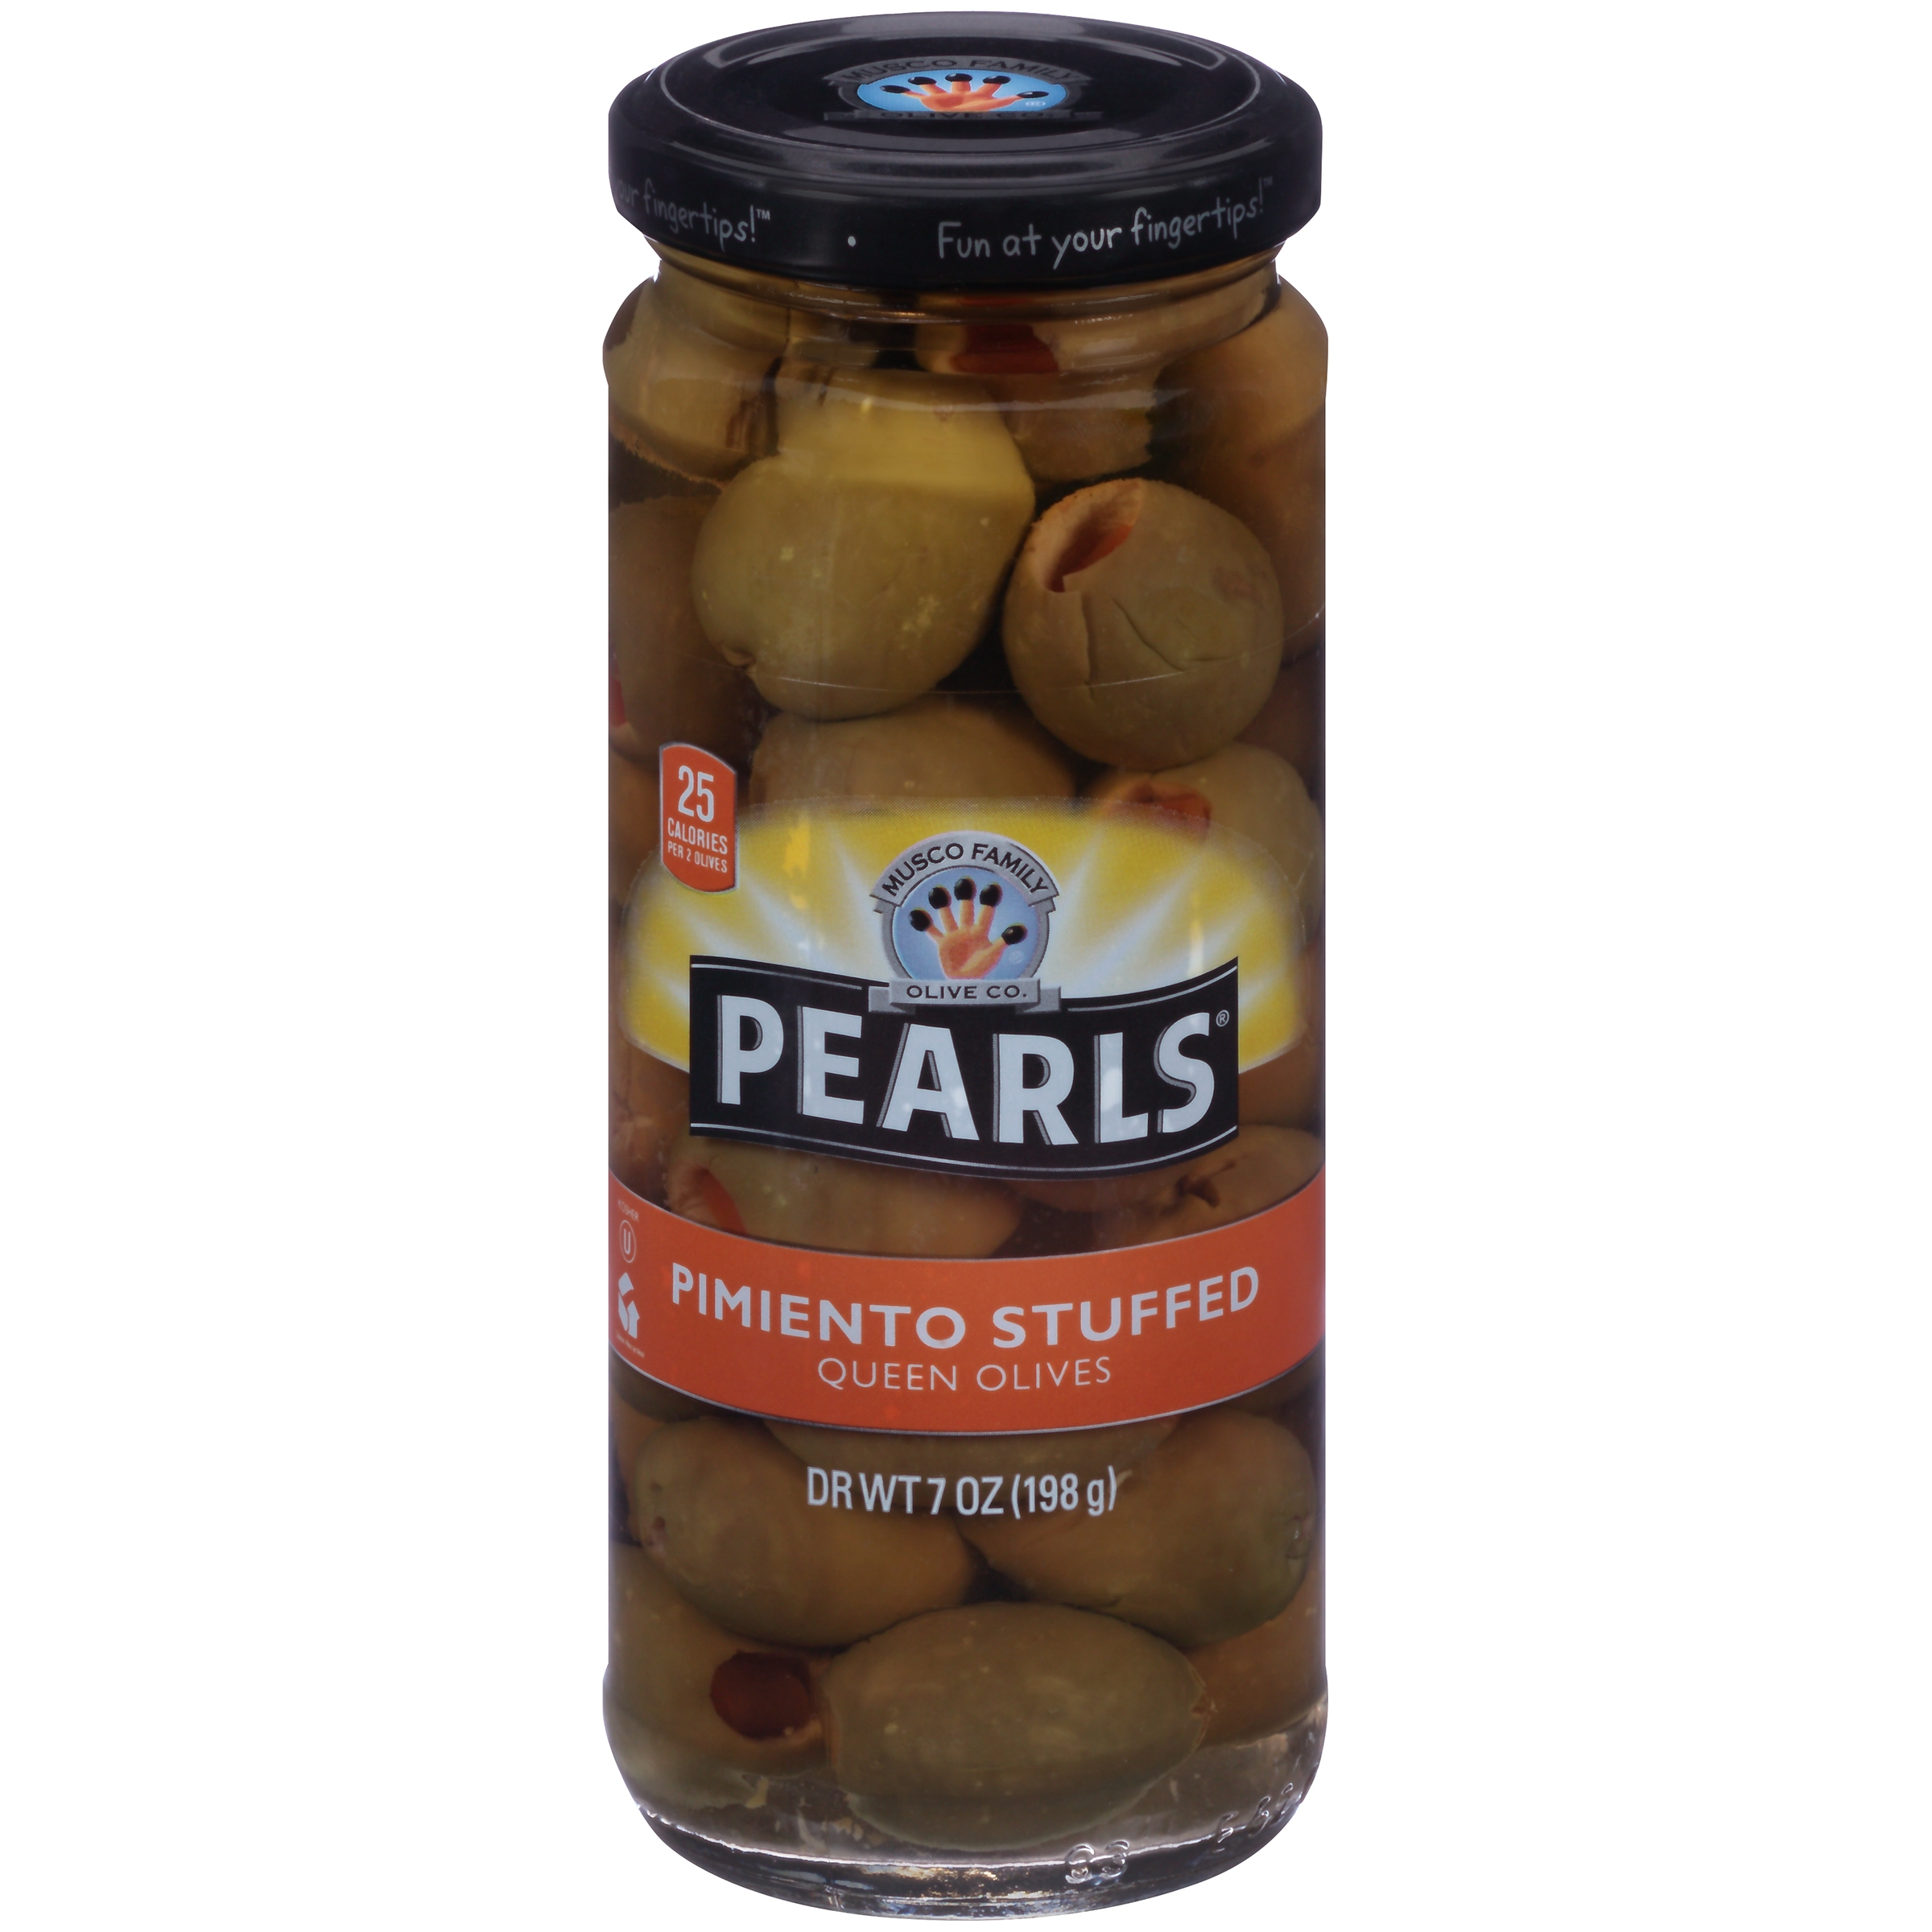 Pearls® Pimiento Stuffed Queen Olives, 7 oz. Jar